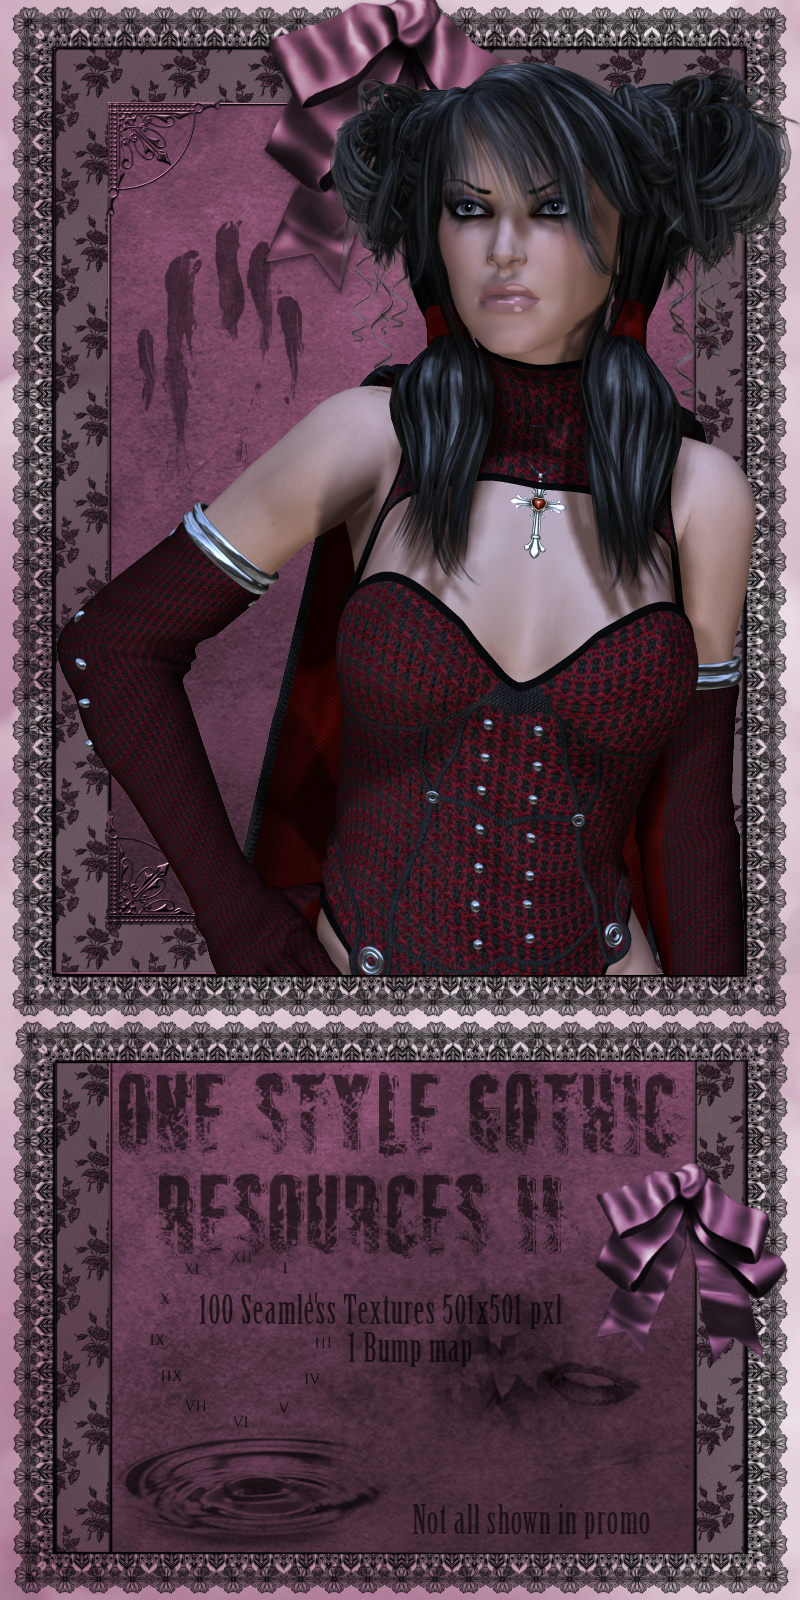 One style gothic resources II